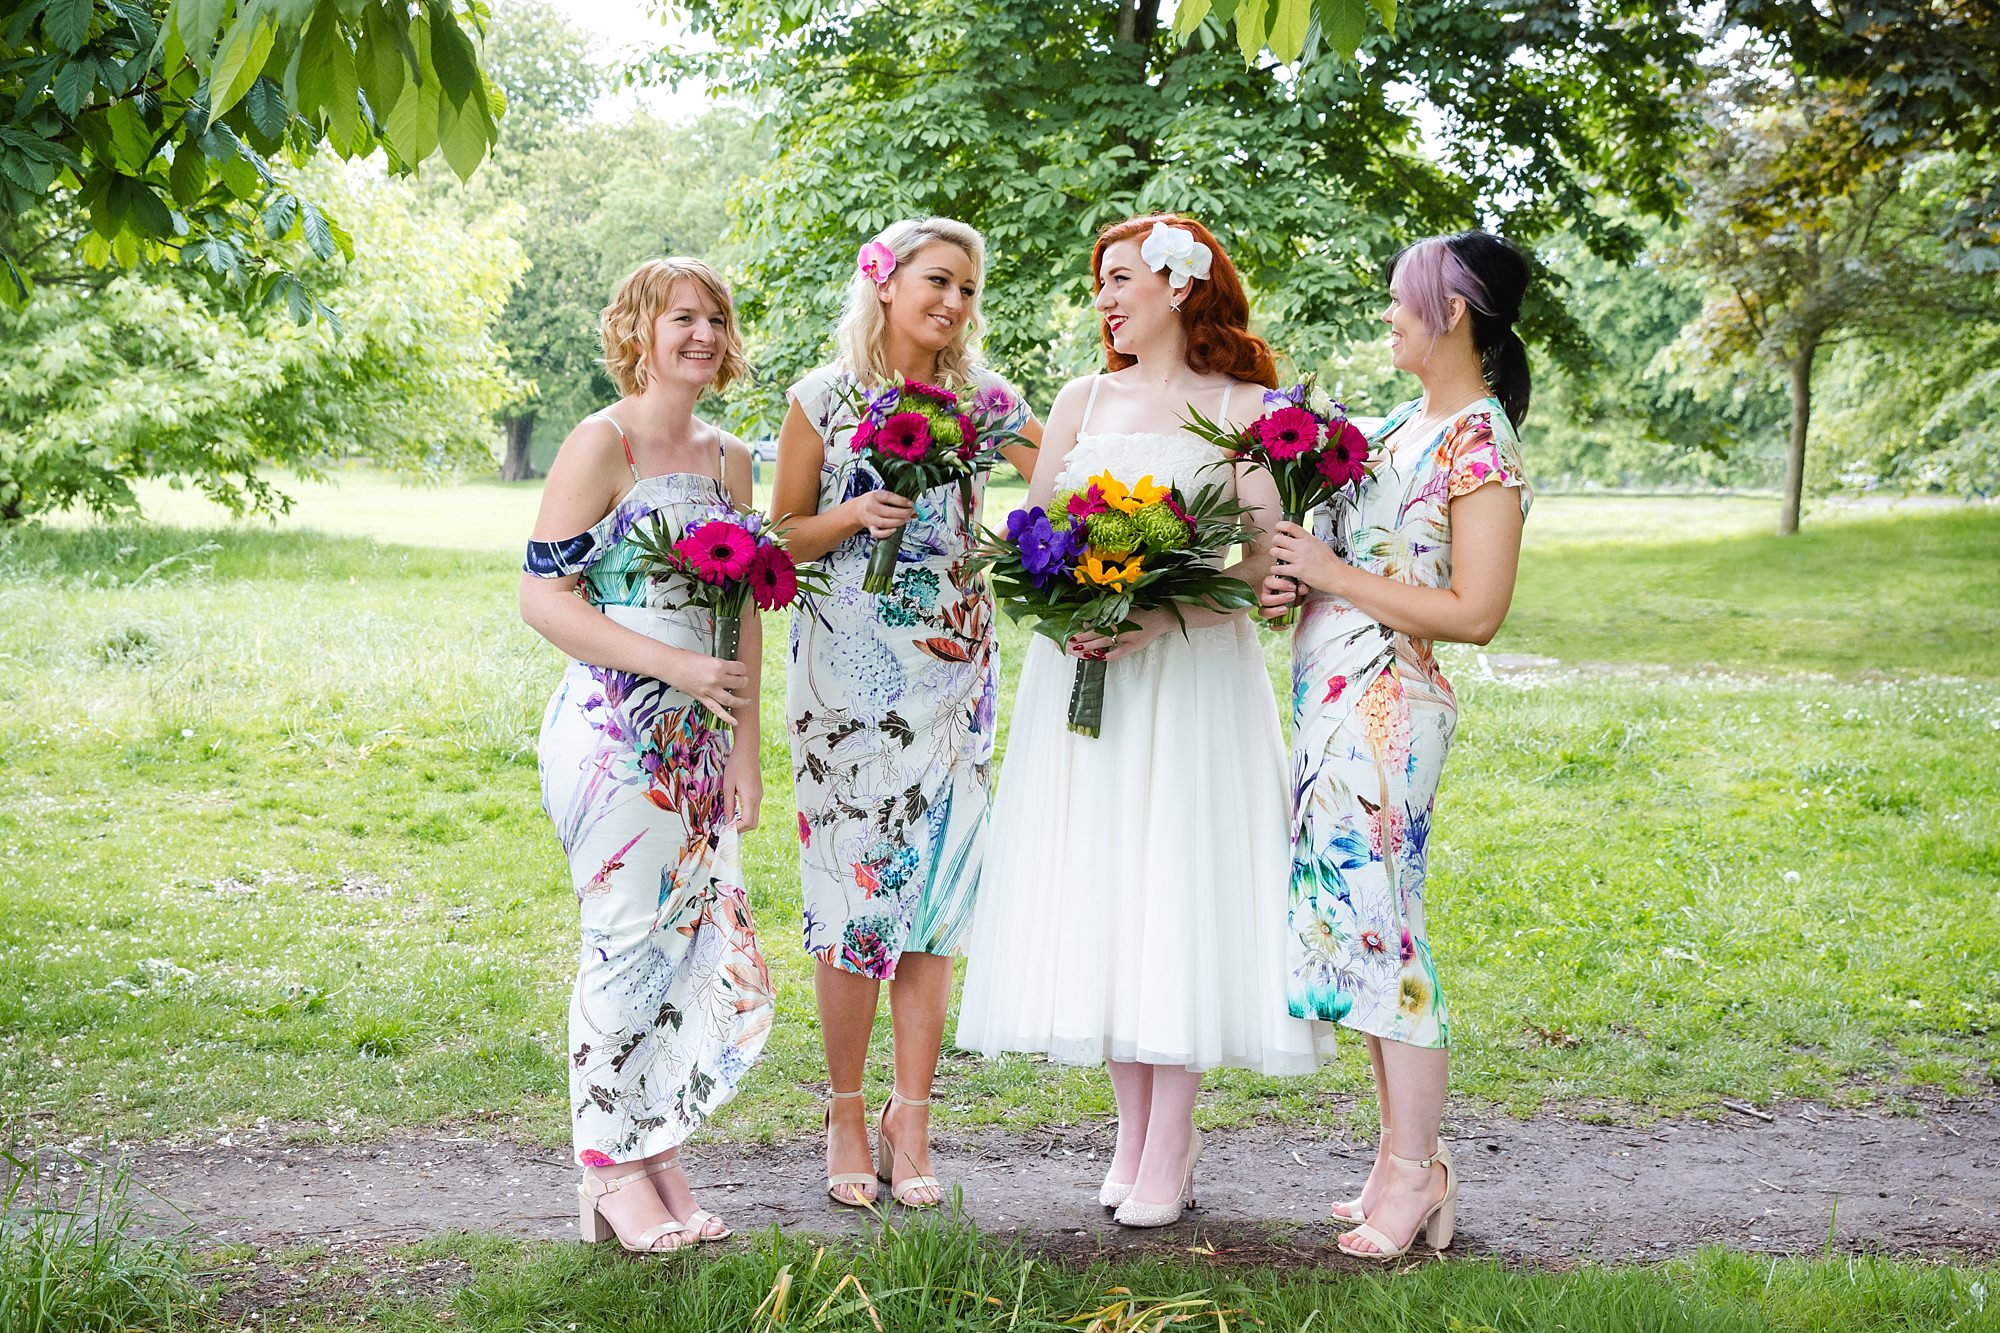 The Grange Ealing wedding fun portrait of bride and bridesmaids